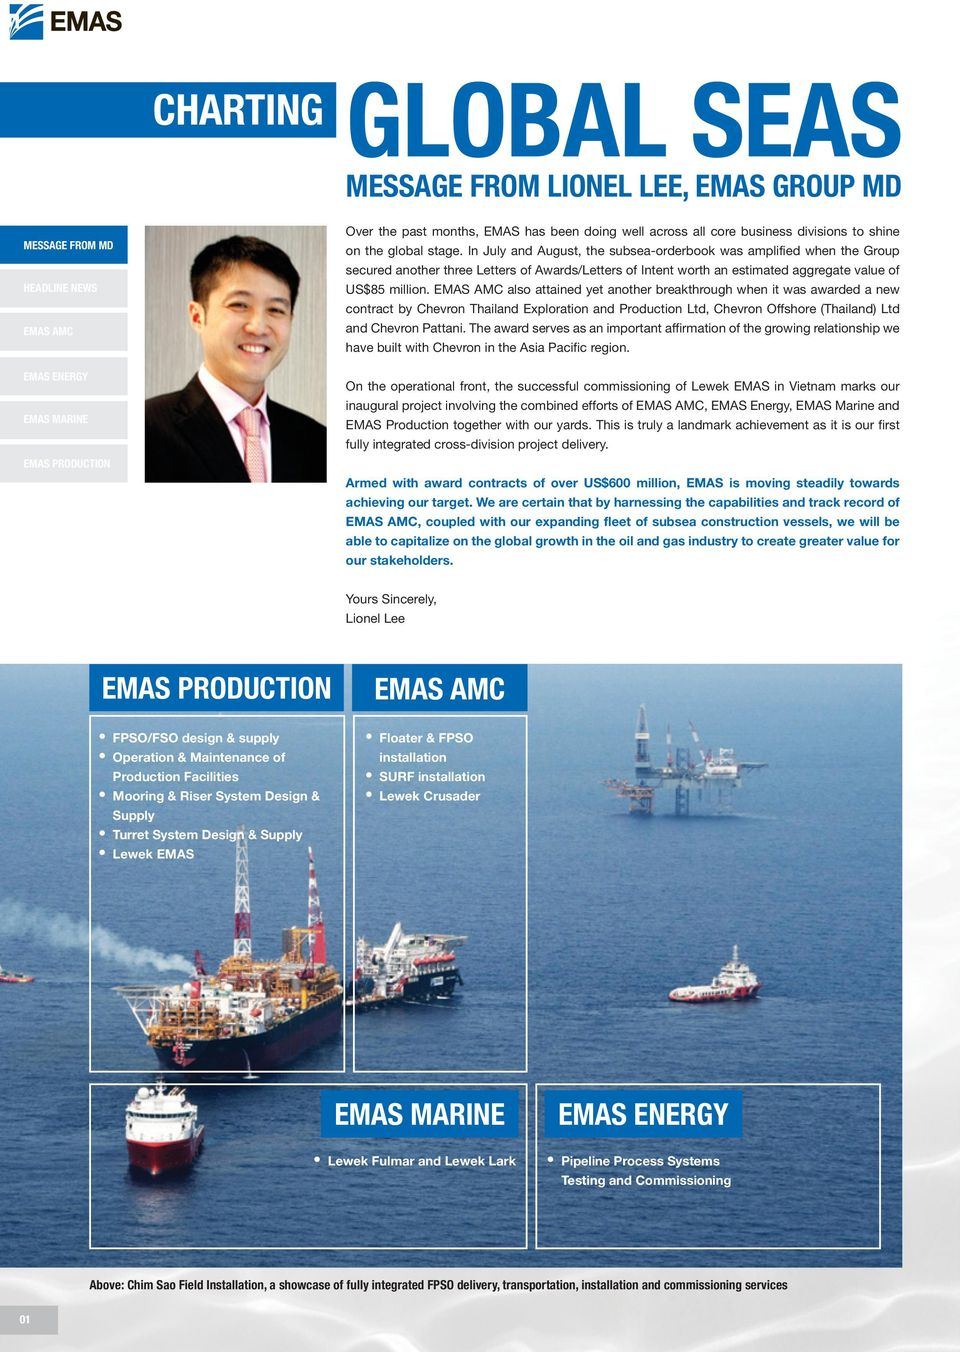 also attained yet another breakthrough when it was awarded a new contract by Chevron Thailand Exploration and Production Ltd, Chevron Offshore (Thailand) Ltd and Chevron Pattani.